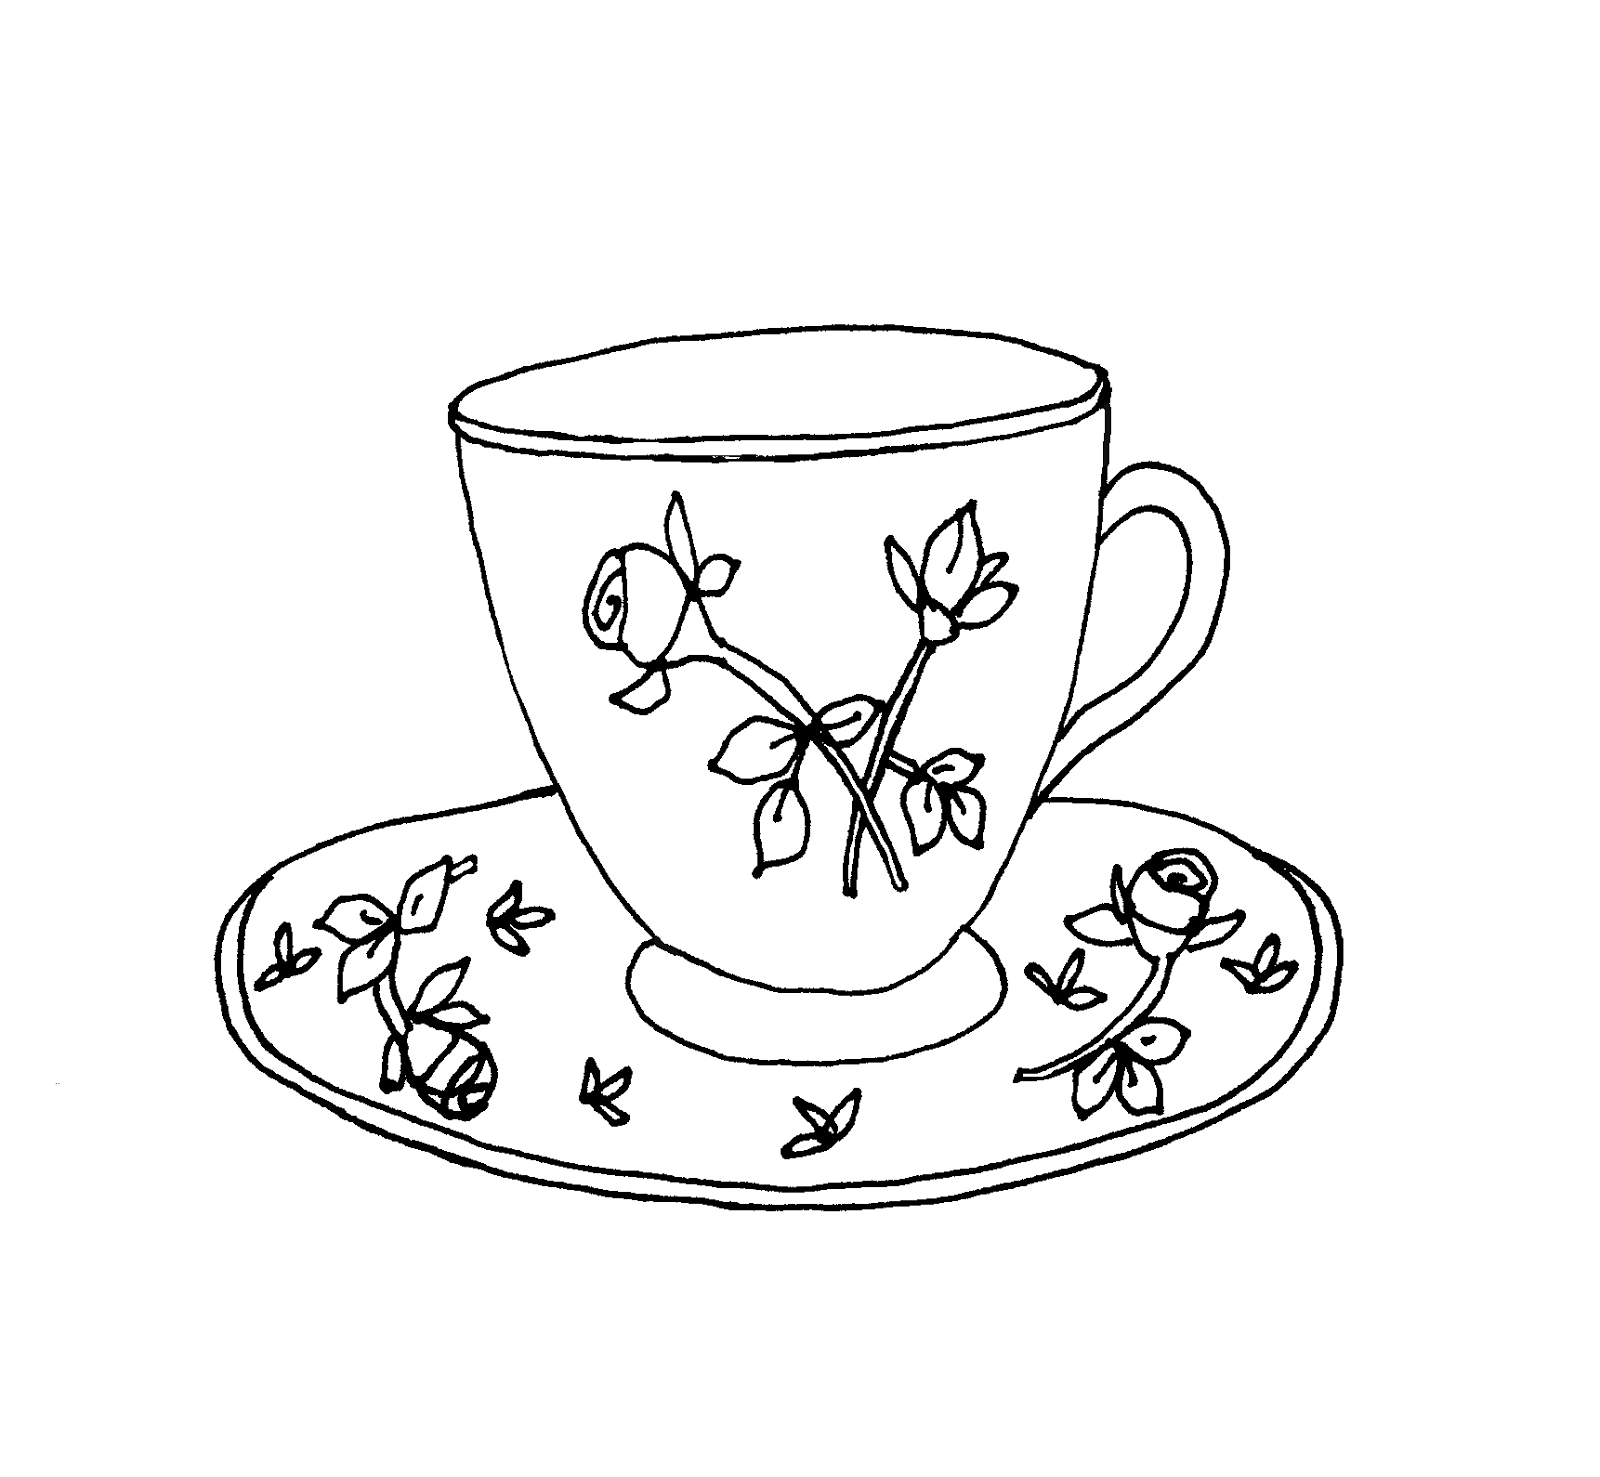 1600x1477 55 Tea Cup Sketch, Tea Party How To Draw A Teacup And Paint